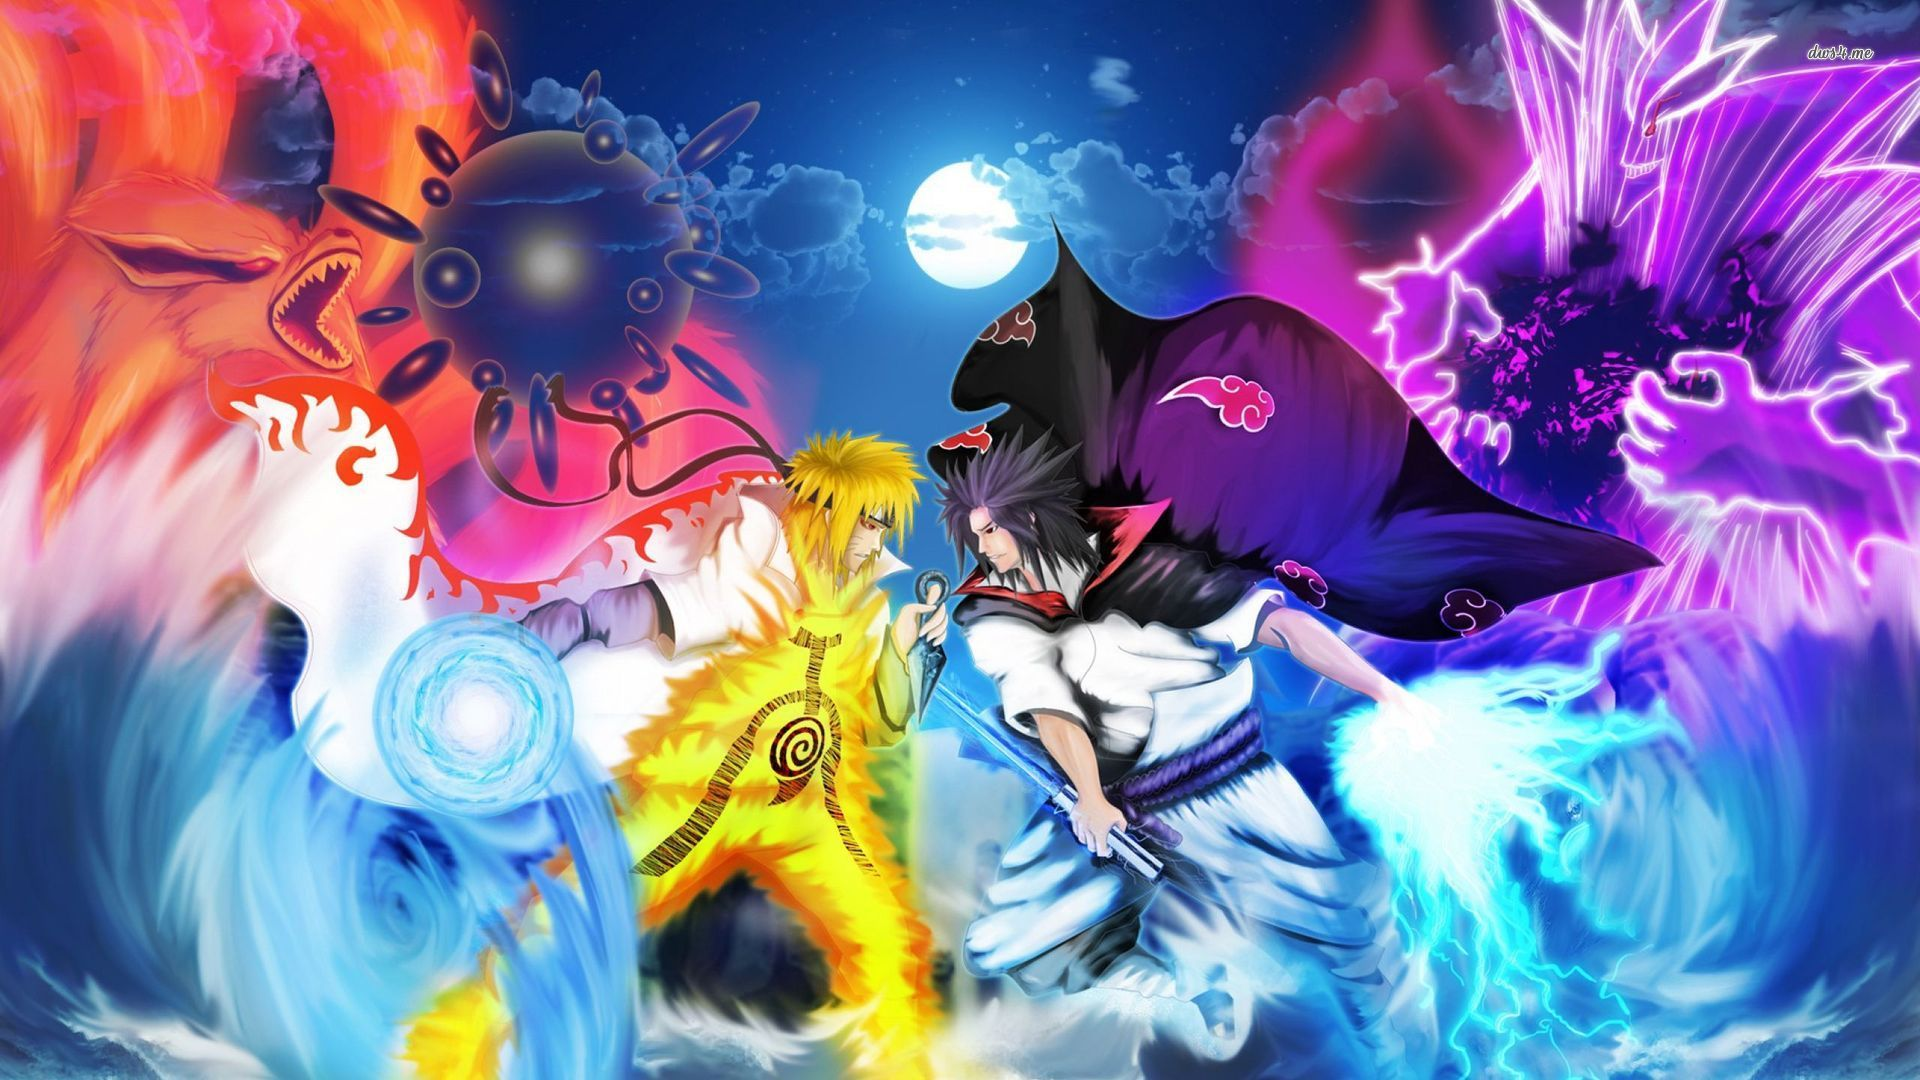 Naruto Vs Sasuke 4k Wallpapers Hd Resolution Cinema Wallpaper 1080p Wallpaper Naruto Shippuden Naruto Vs Sasuke Naruto Wallpaper